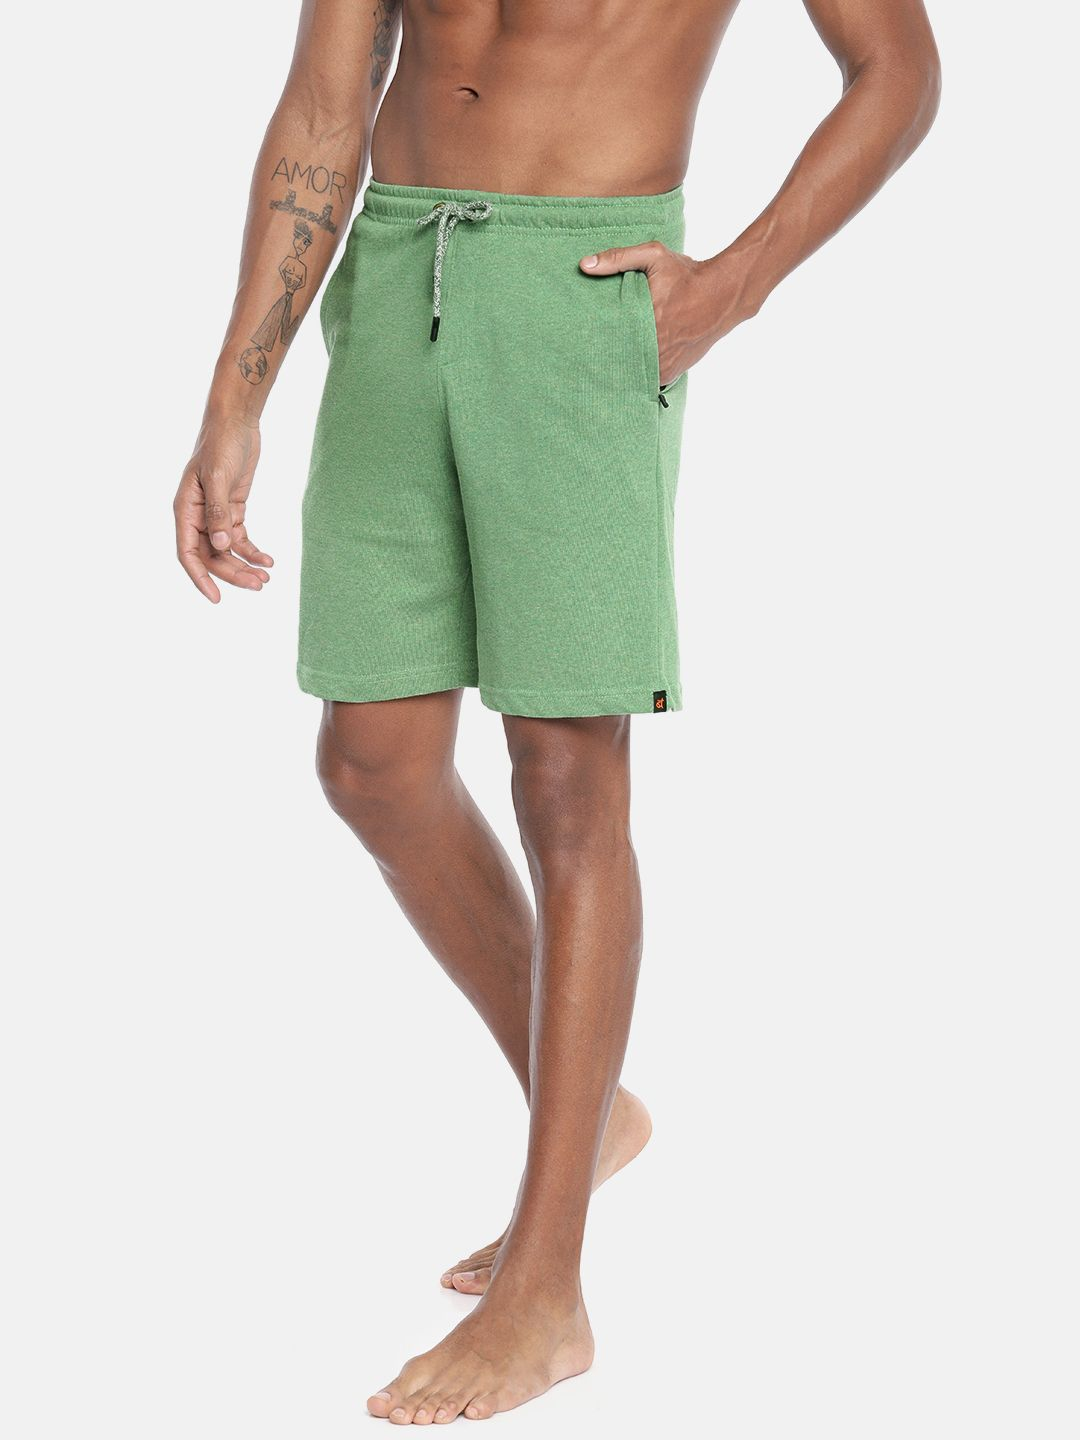 The Green Gringo Everywear Shorts